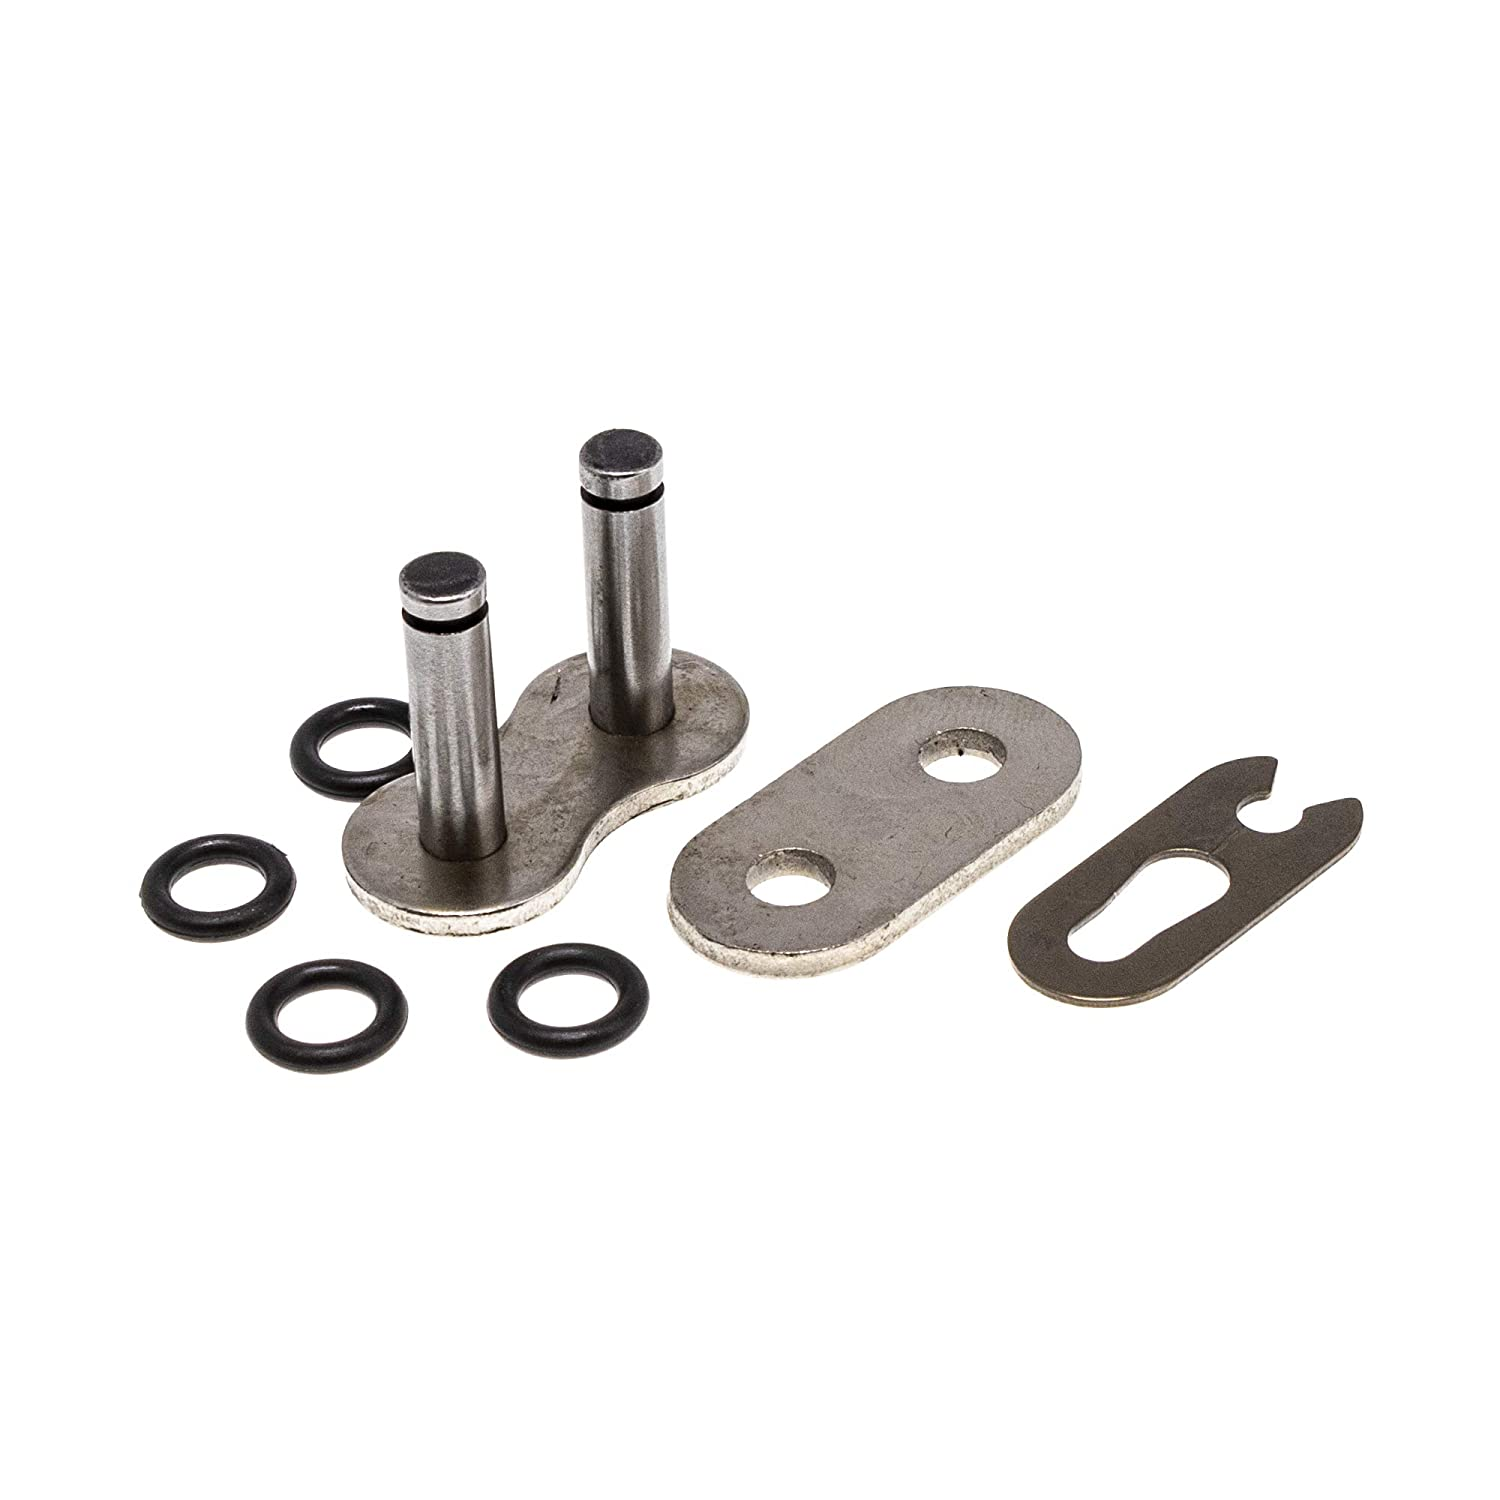 NICHE 520 Drive Chain 86 Links O-Ring With Connecting Master Link for Motorcycle ATV Dirt Bike